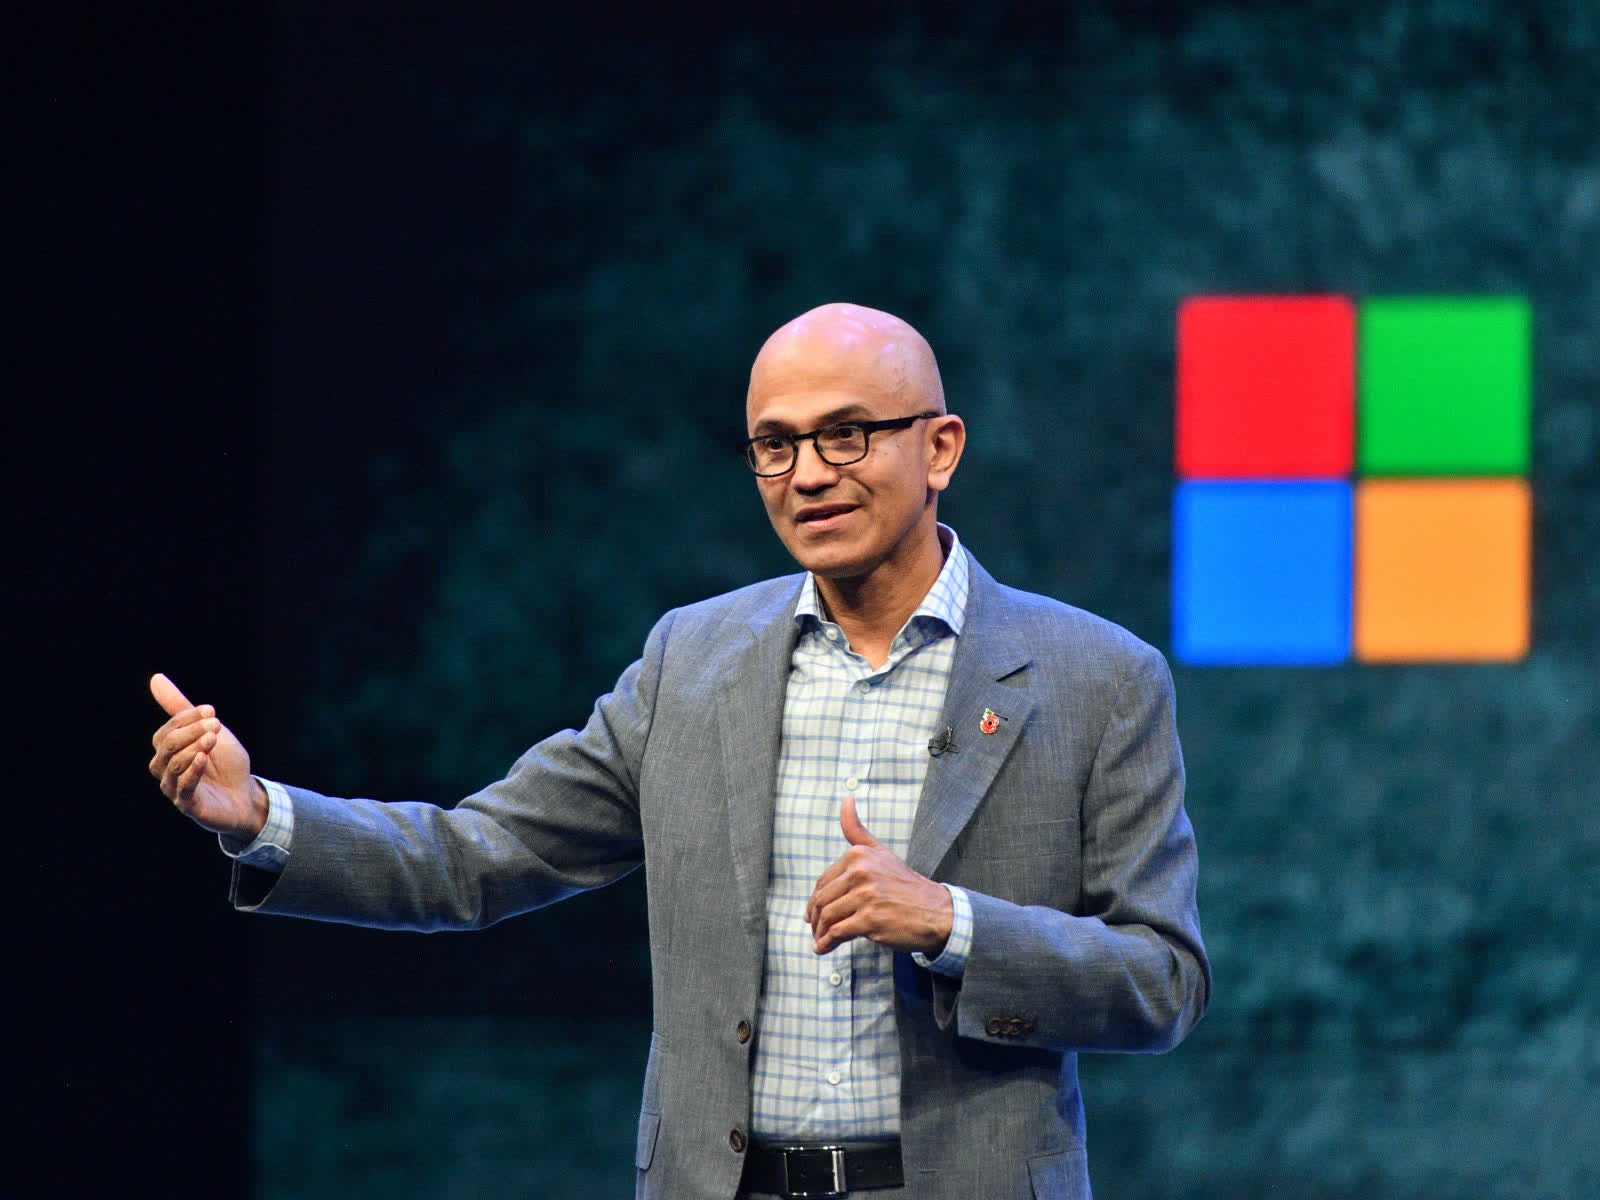 Microsoft CEO Satya Nadella says trying to buy TikTok was the 'strangest thing' he's ever worked on